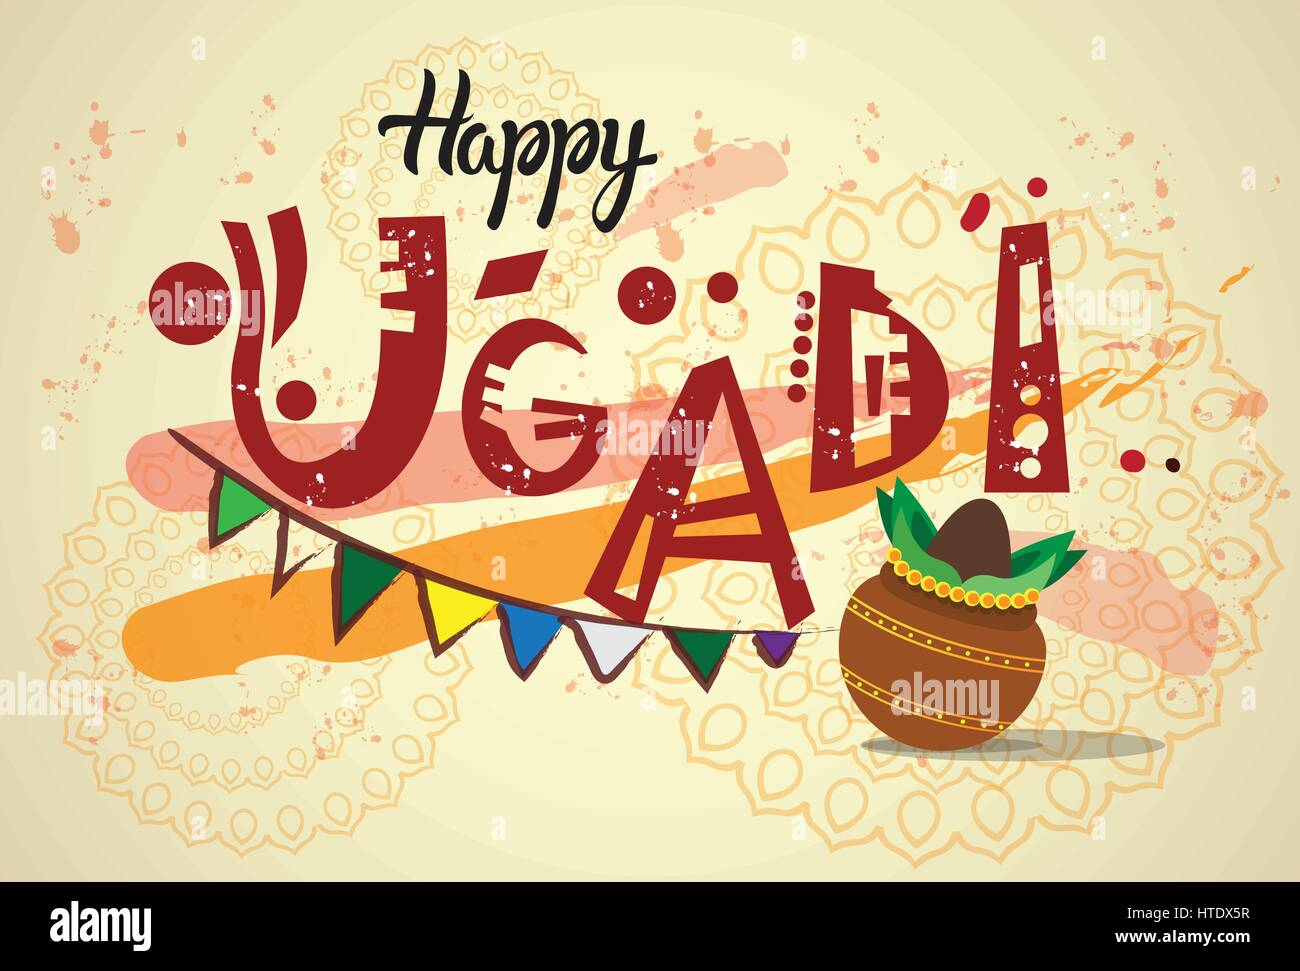 Happy ugadi and gudi padwa hindu new year greeting card holiday pot happy ugadi and gudi padwa hindu new year greeting card holiday pot with coconut m4hsunfo